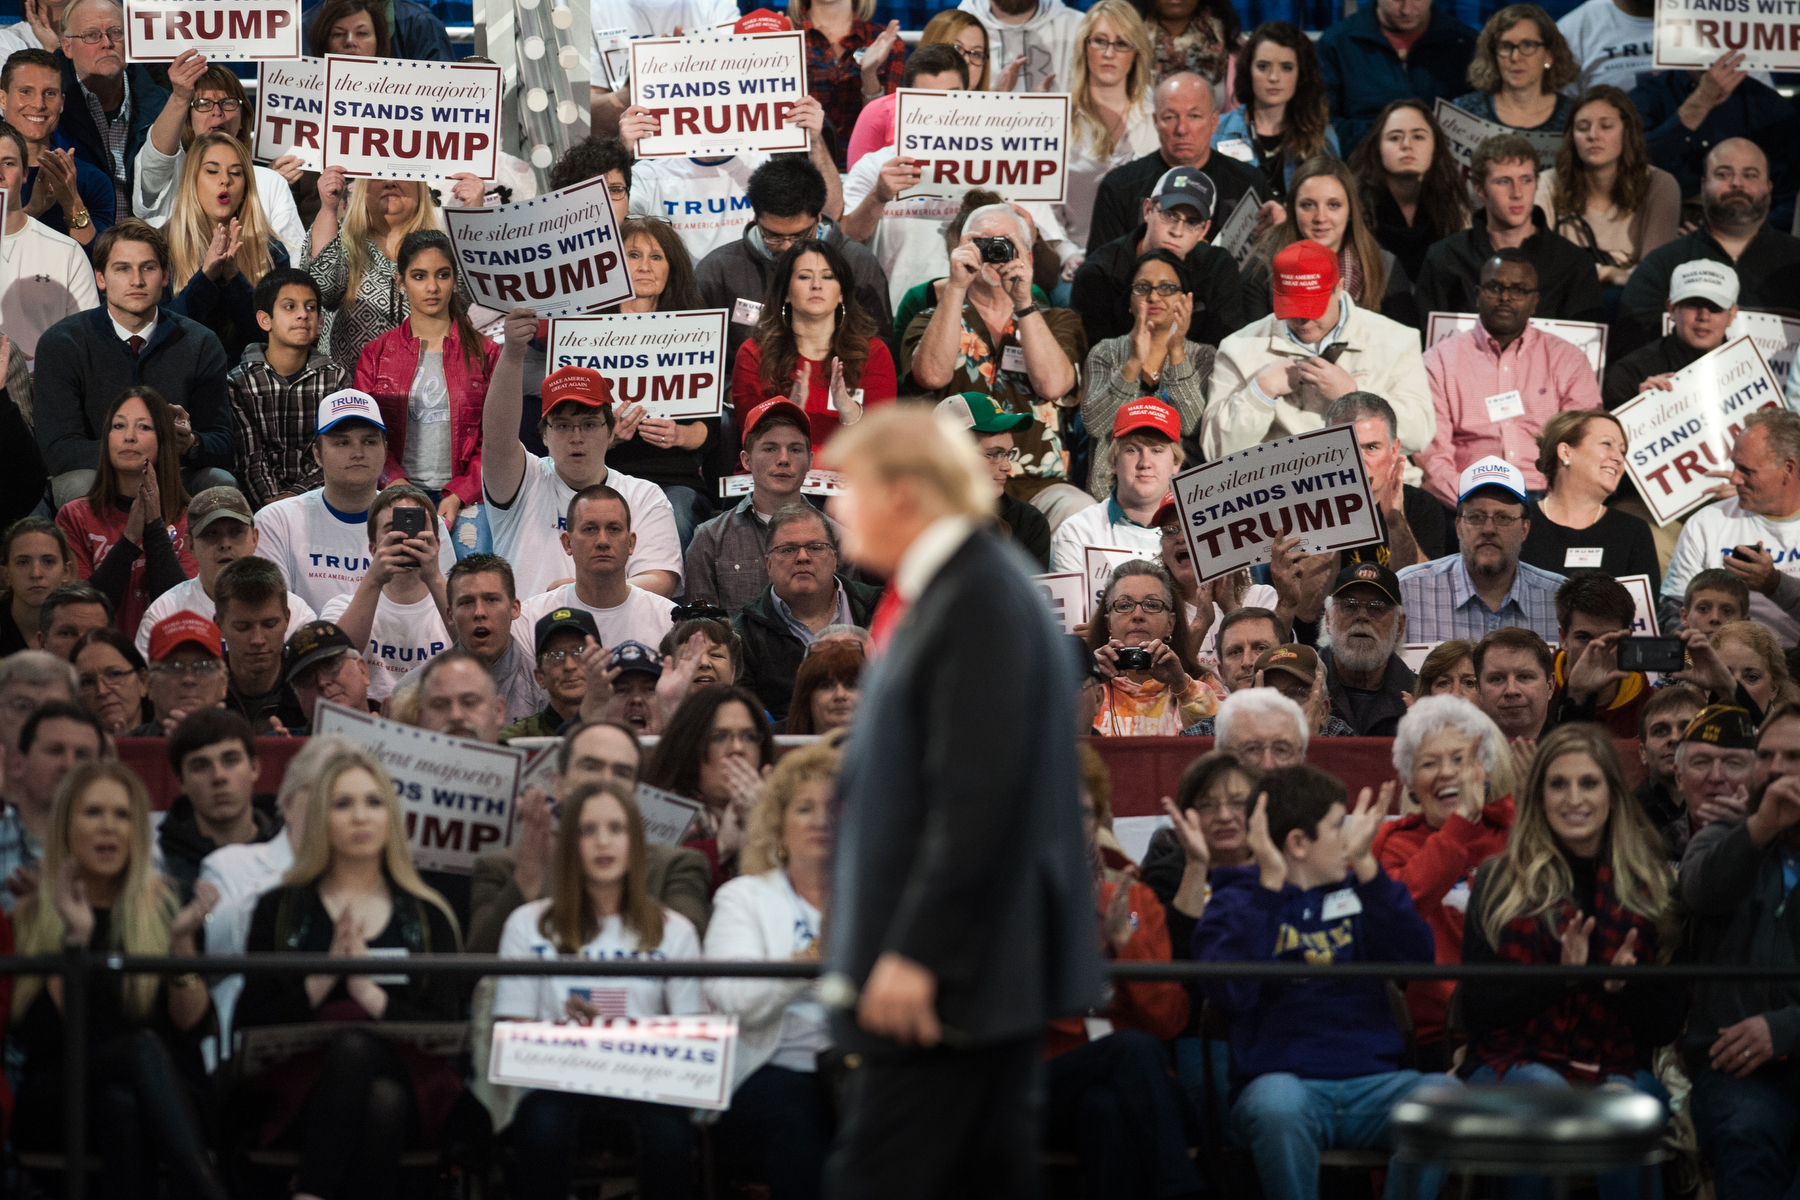 Attendees watch as Donald Trump, president and chief executive of Trump Organization Inc. and 2016 Republican presidential candidate, speaks during a campaign event in Des Moines, Iowa, U.S., on Friday, Dec. 11, 2015. Mark Kauzlarich/Bloomberg